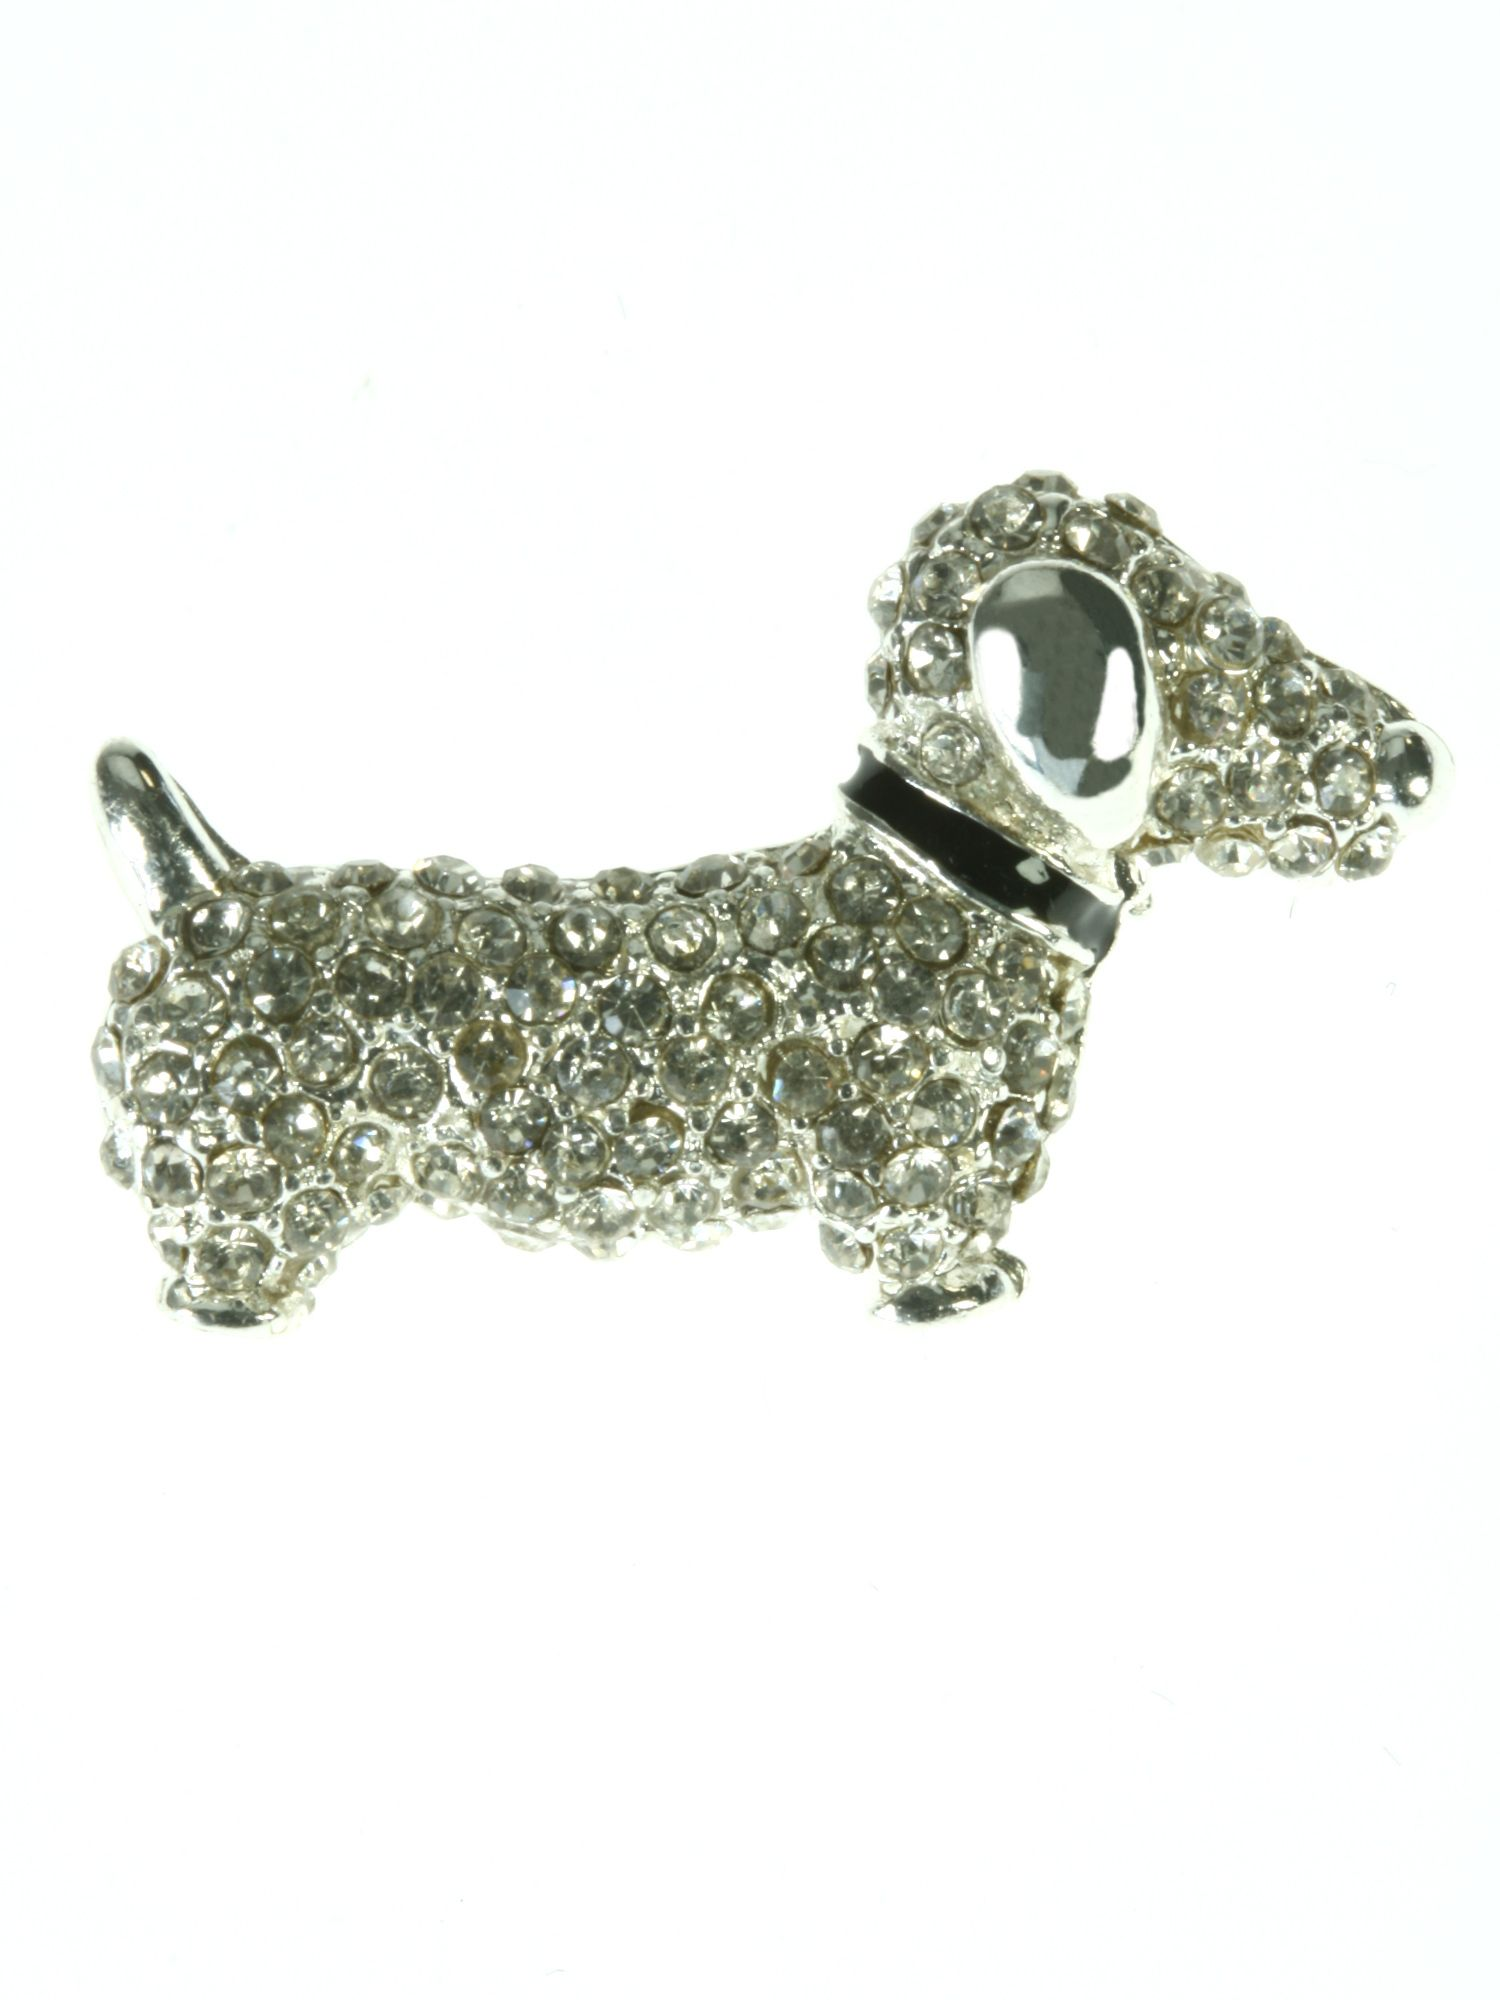 Crystal encrusted sausage dog with black collar